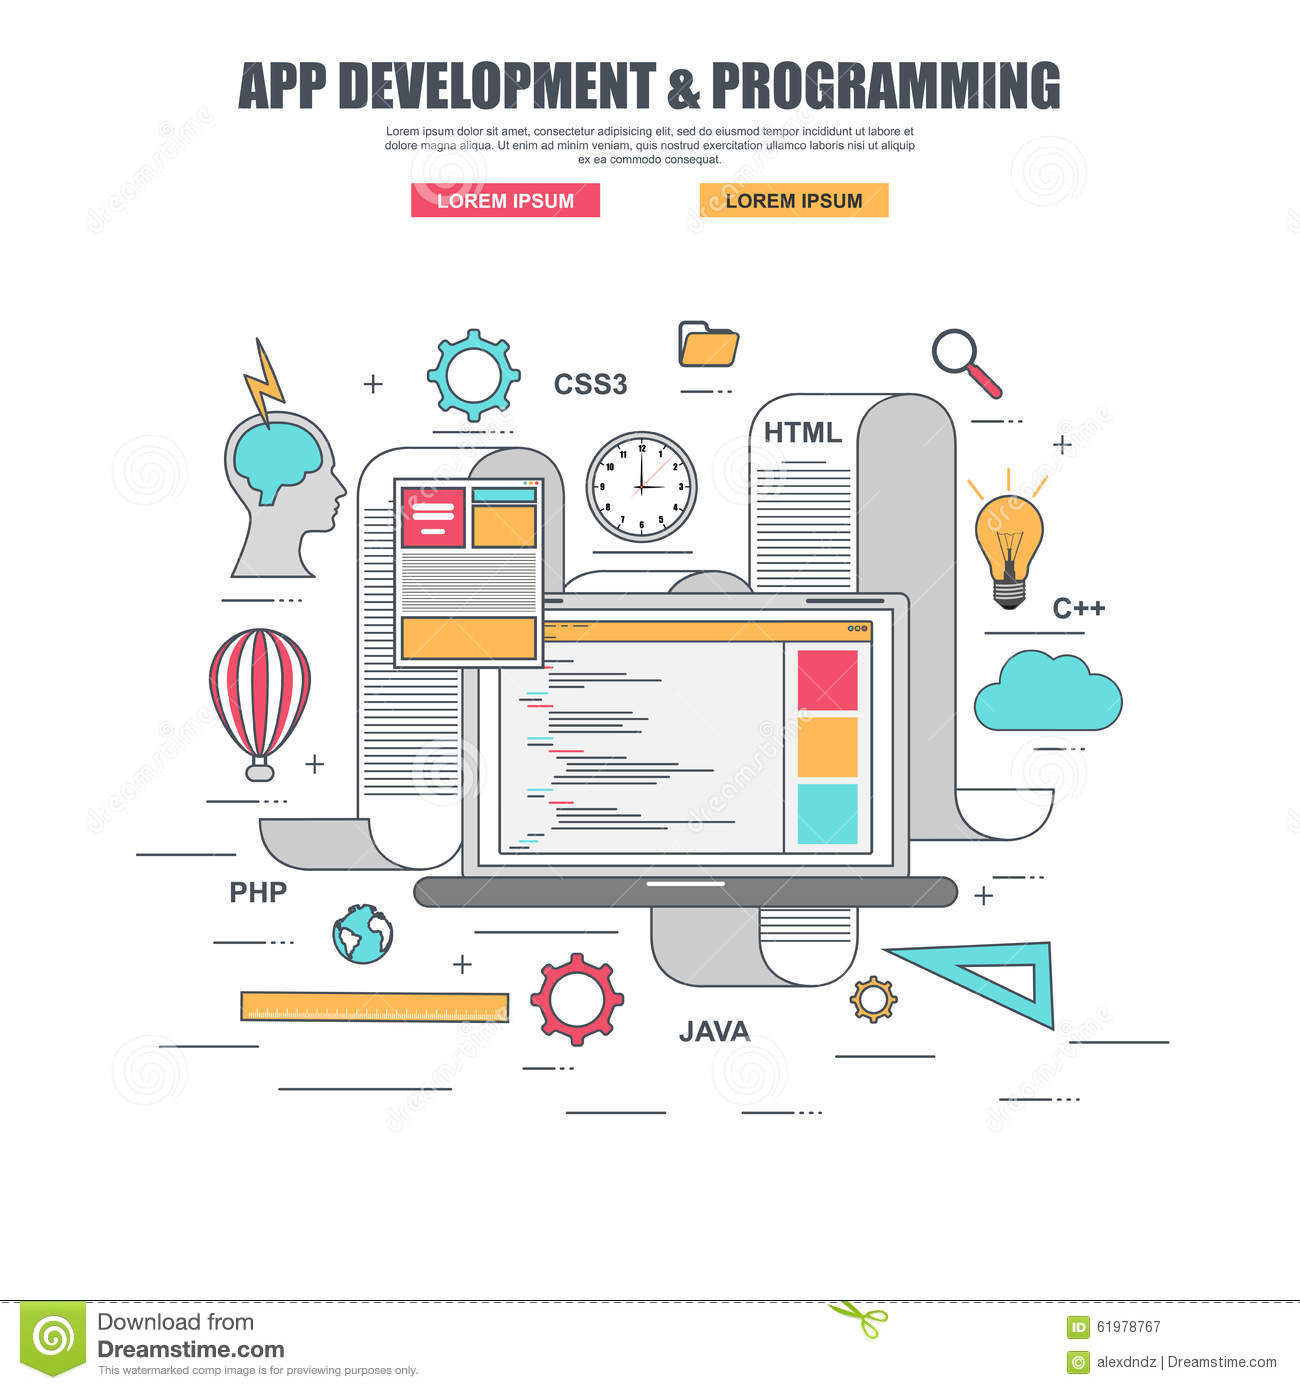 concept programing Architectural programming began when architecture began structures have always been based on programs: decisions were made, something was designed, built and occupied in a way, archaeologists excavate buildings to try to determine their programs.